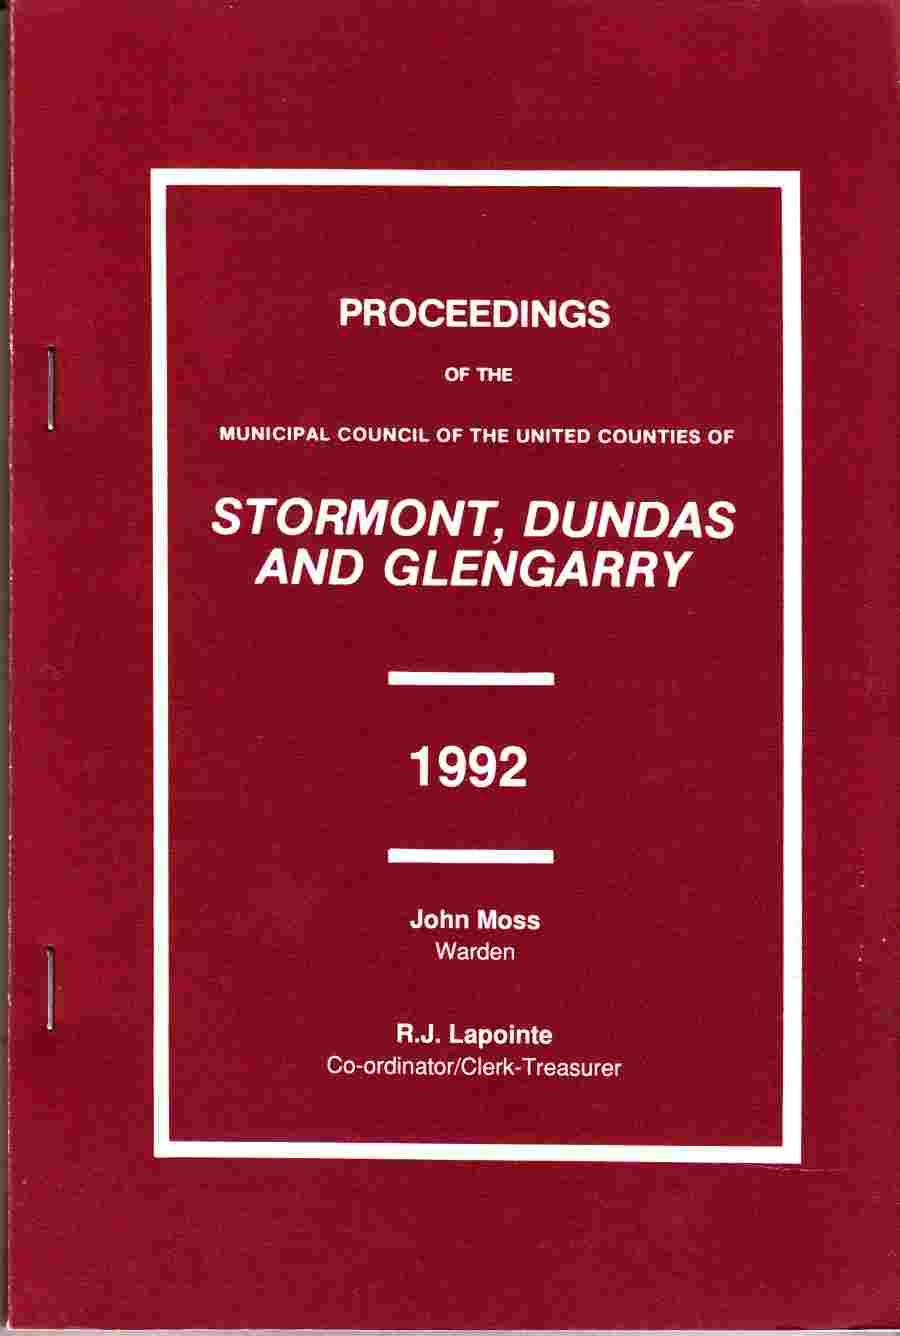 Image for Proceedings of the Municipal Council of the United Counties of Stormont, Dundas and Glengarry 1992